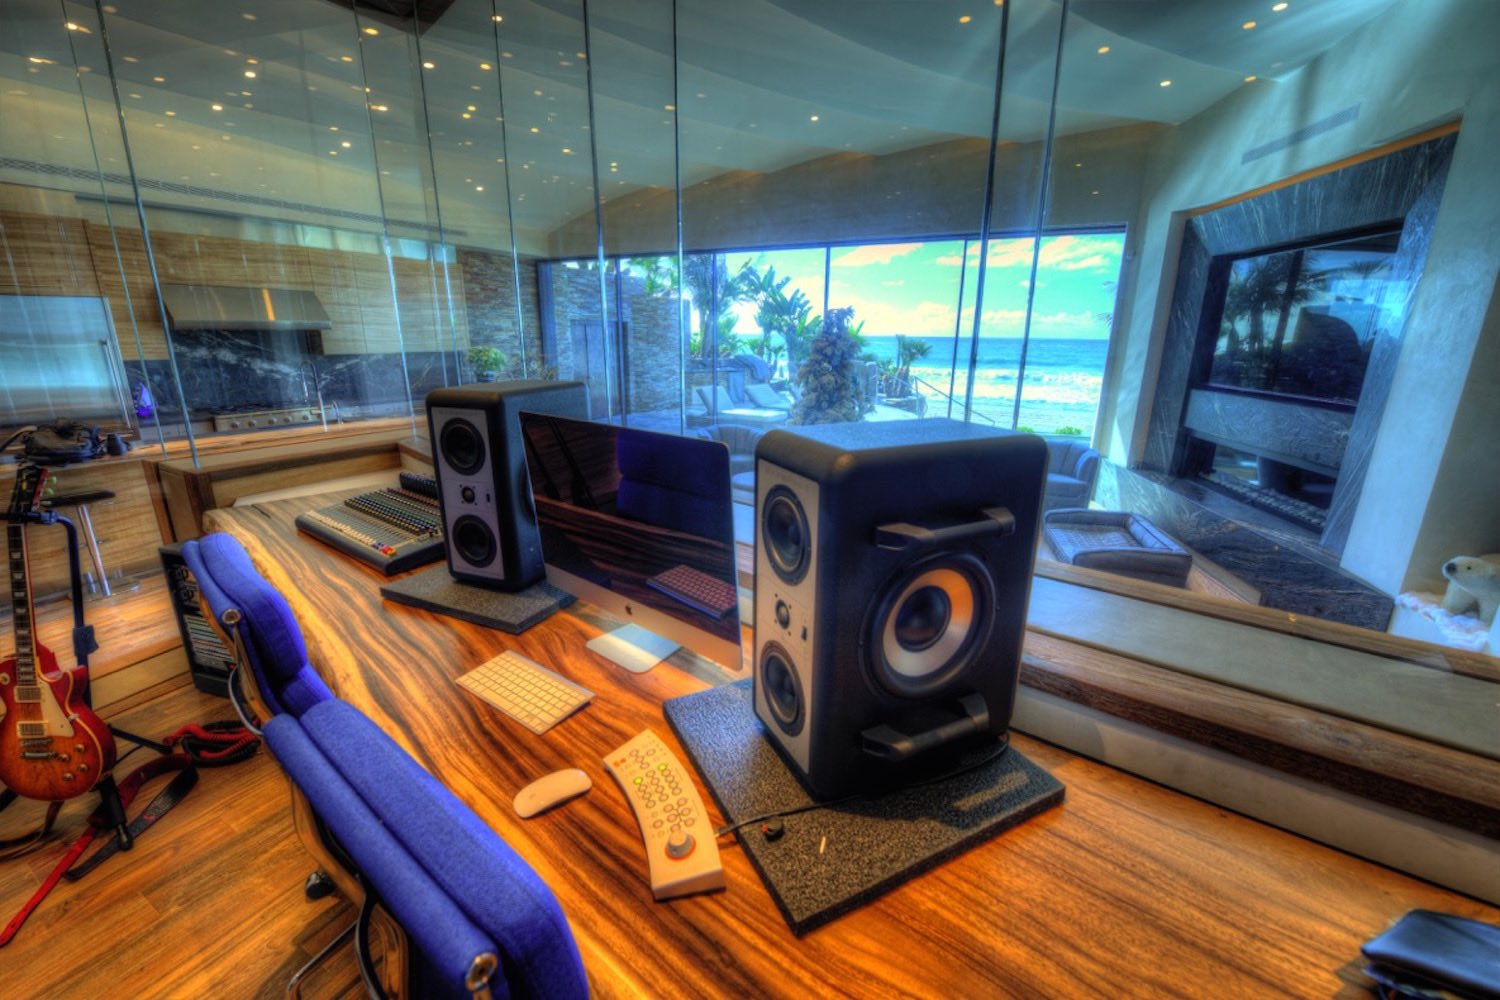 Chris Huber commissioned WSDG to design his residential private ocean-view recording studio inspired in their glass design in Diante Do Trono. Studio Barefoot speakers.